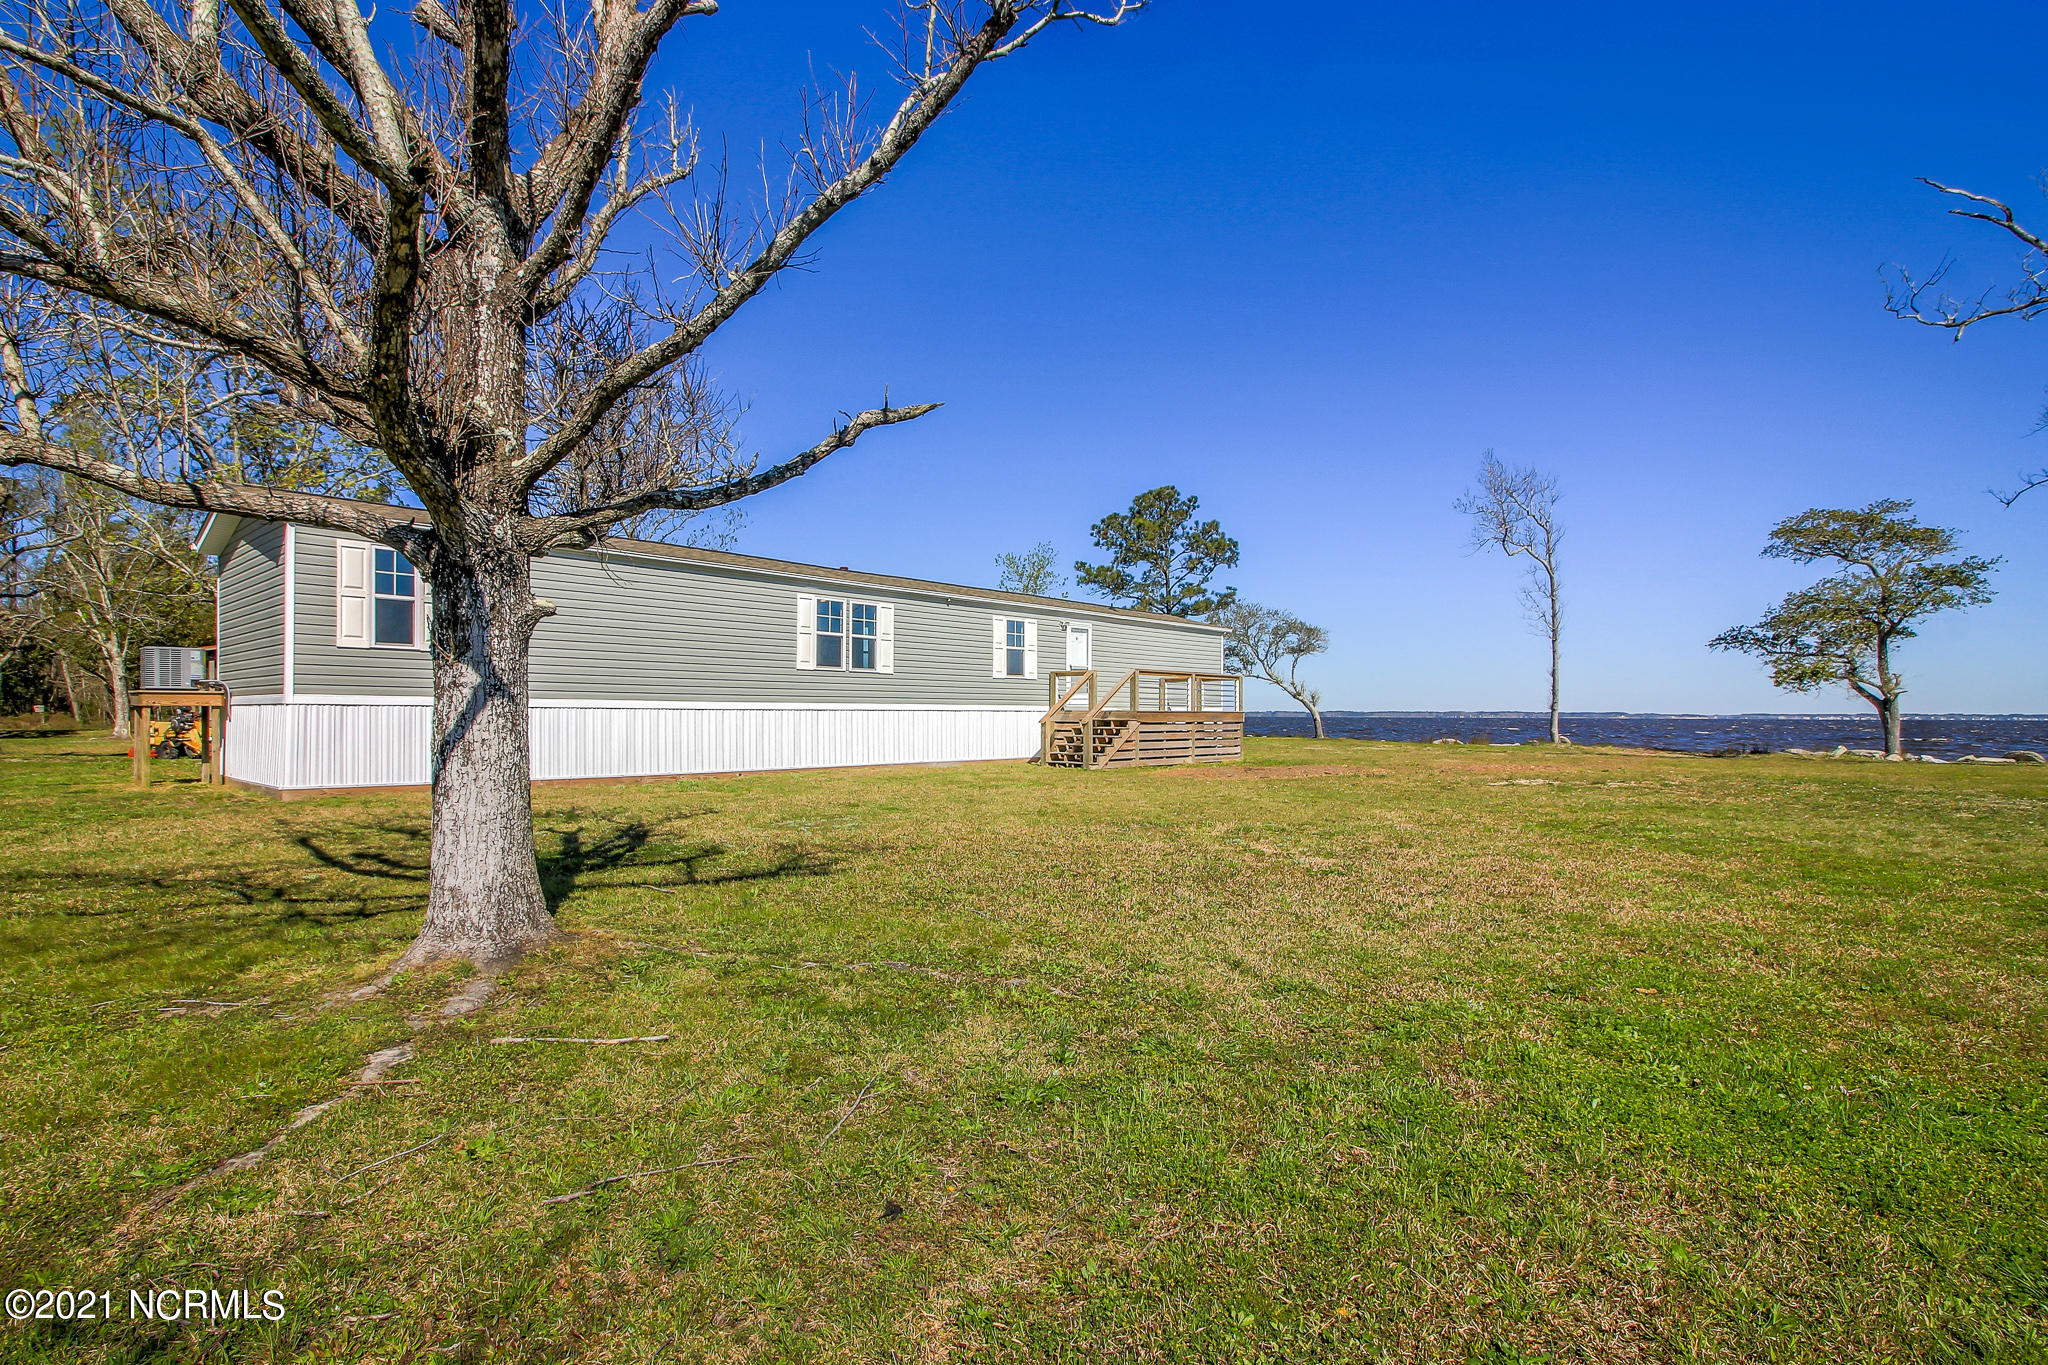 1410 River Drive, Havelock, North Carolina 28532, 3 Bedrooms Bedrooms, 5 Rooms Rooms,2 BathroomsBathrooms,Manufactured home,For sale,River,100264184